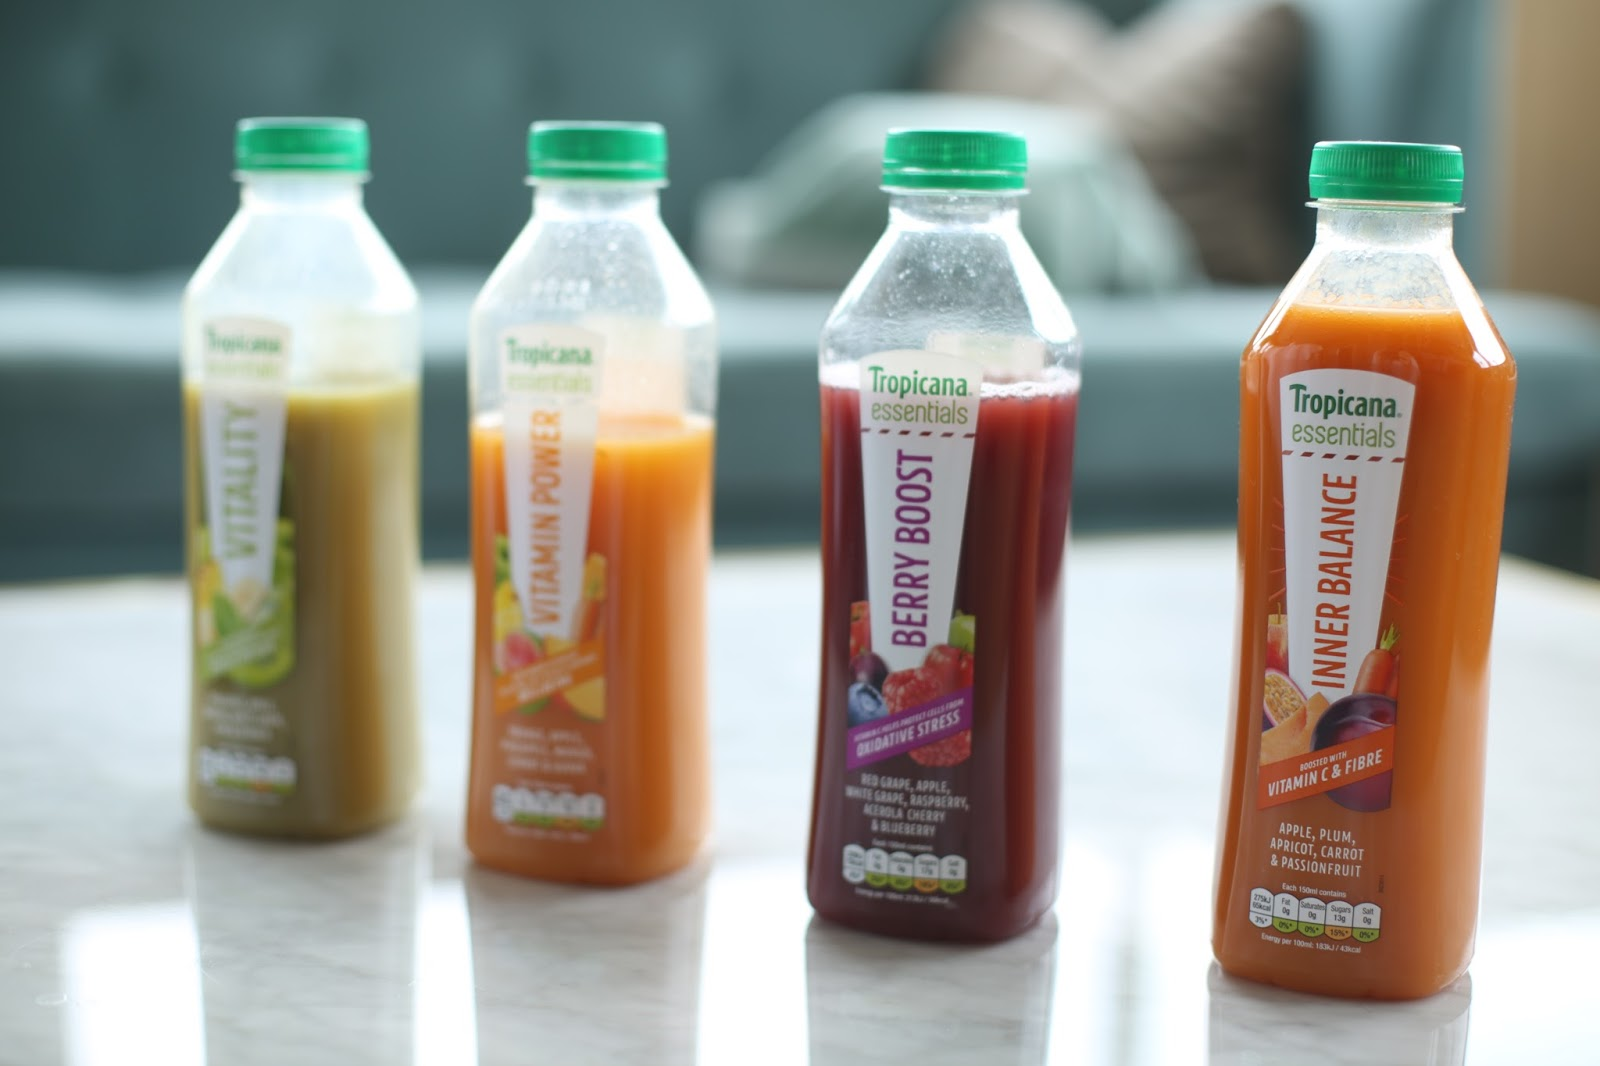 Tropicana Essentials range juices